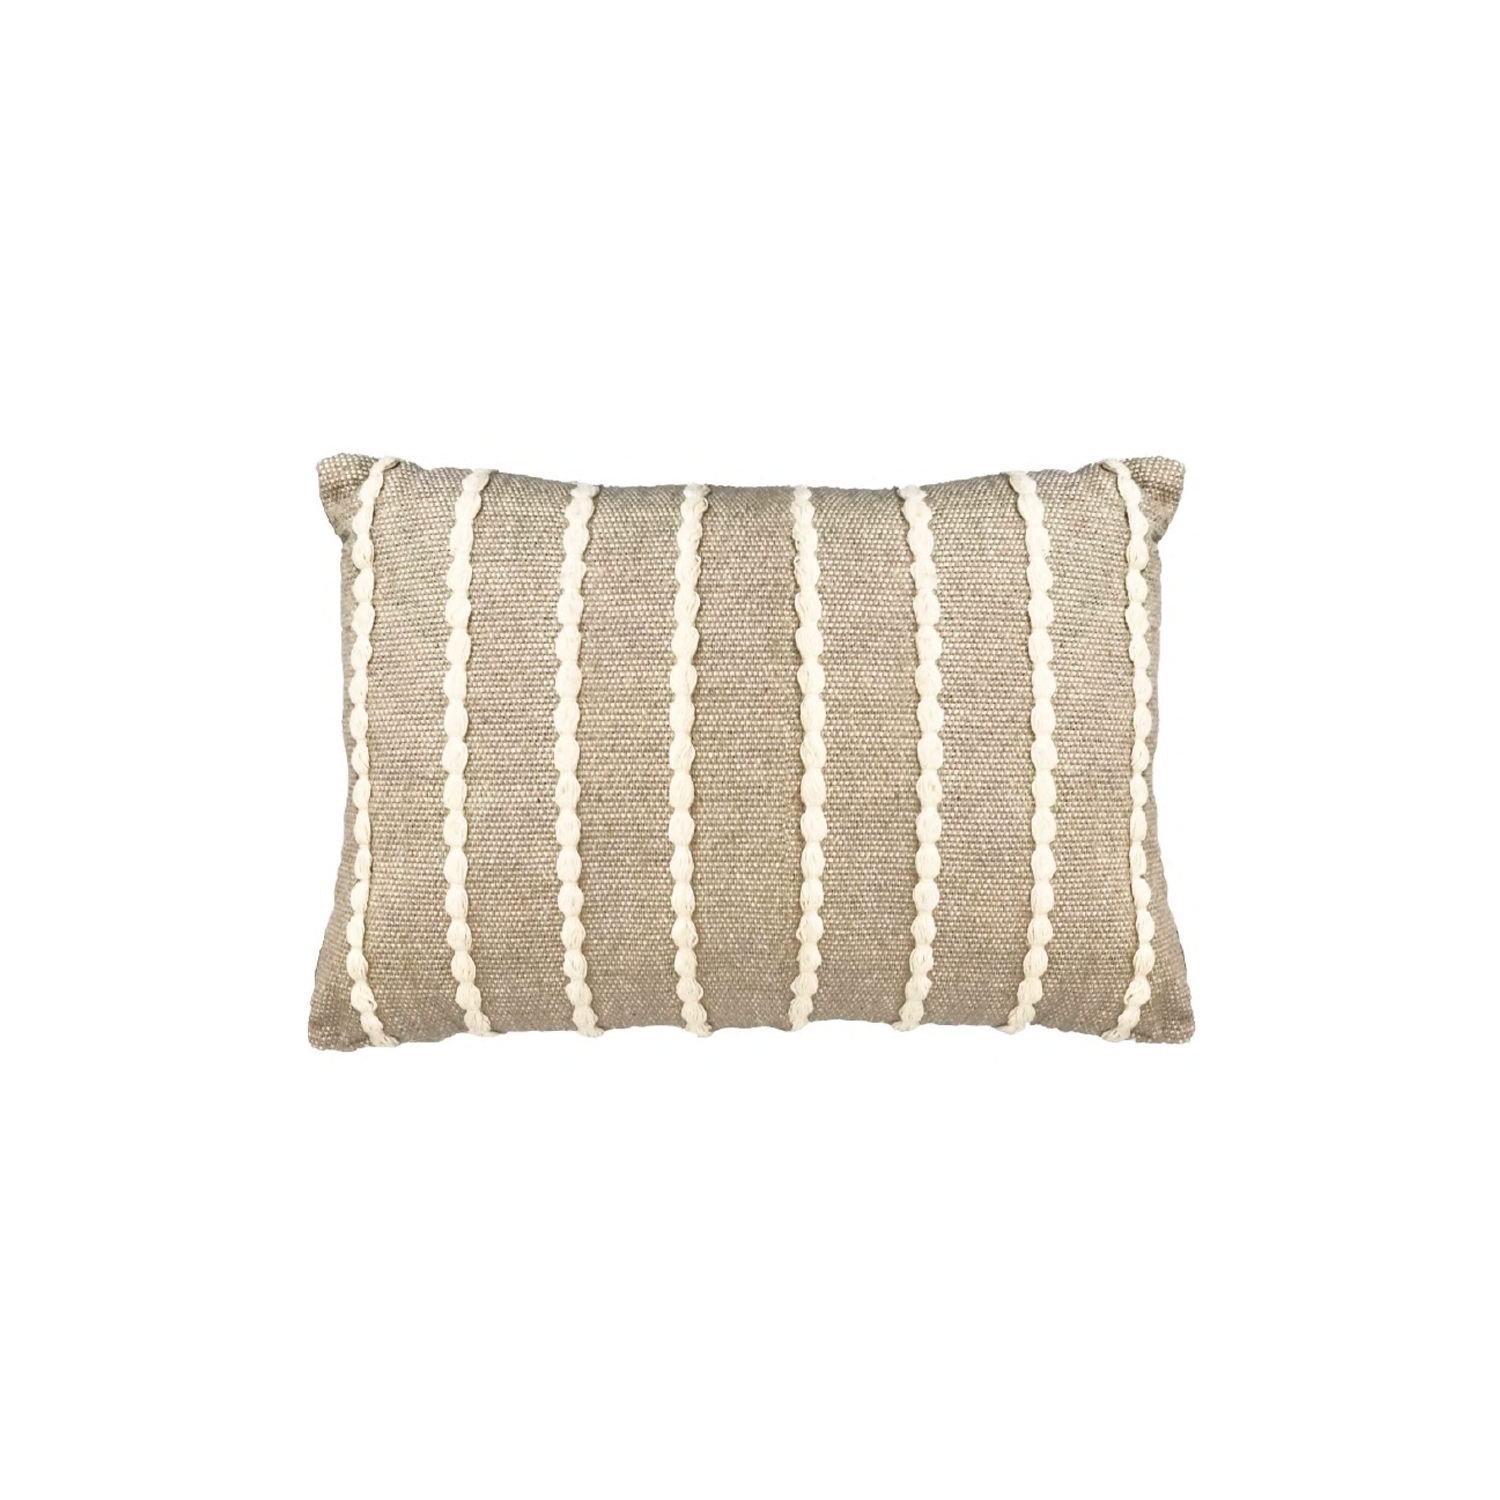 Lua Ecru Cotton Cushion Large - The Flame Sustainable Collection is made from a selection of organic cotton fibres, eco-friendly, hand-woven or elaborated using traditional hand-loom techniques. Carefully knitted within a trained community of women that found in their craft a way to provide their families.  This collection combines Elisa Atheniense mission for responsible sourcing and manufacturing. Each piece is meticulously hand-loom by artisans who practised methods with age-old techniques. With a minimal electricity impact, each item crafted is therefore unique and exclusive. Weavers and artisans are the ultimate lifelines of Elisa Atheniense Home Products.  The hand woven cotton, washable cushion cover is made in Brazil and the inner cushion is made in the UK.   | Matter of Stuff